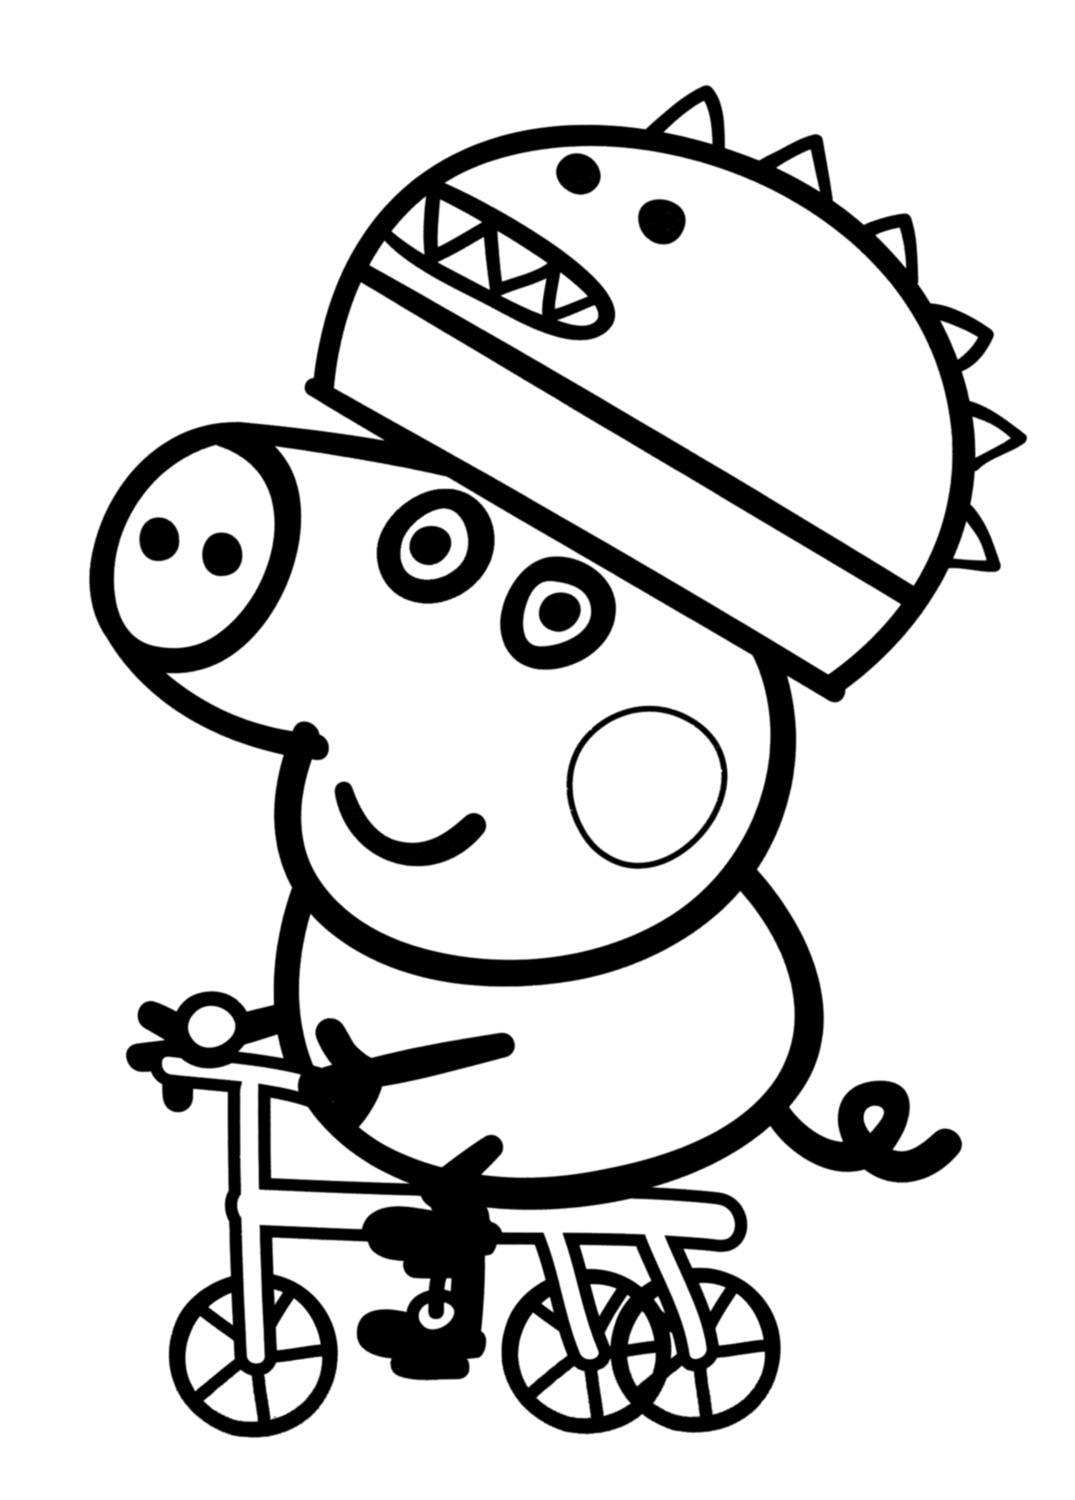 Free coloring pages peppa pig - Explore Peppa Pig Helmet And More